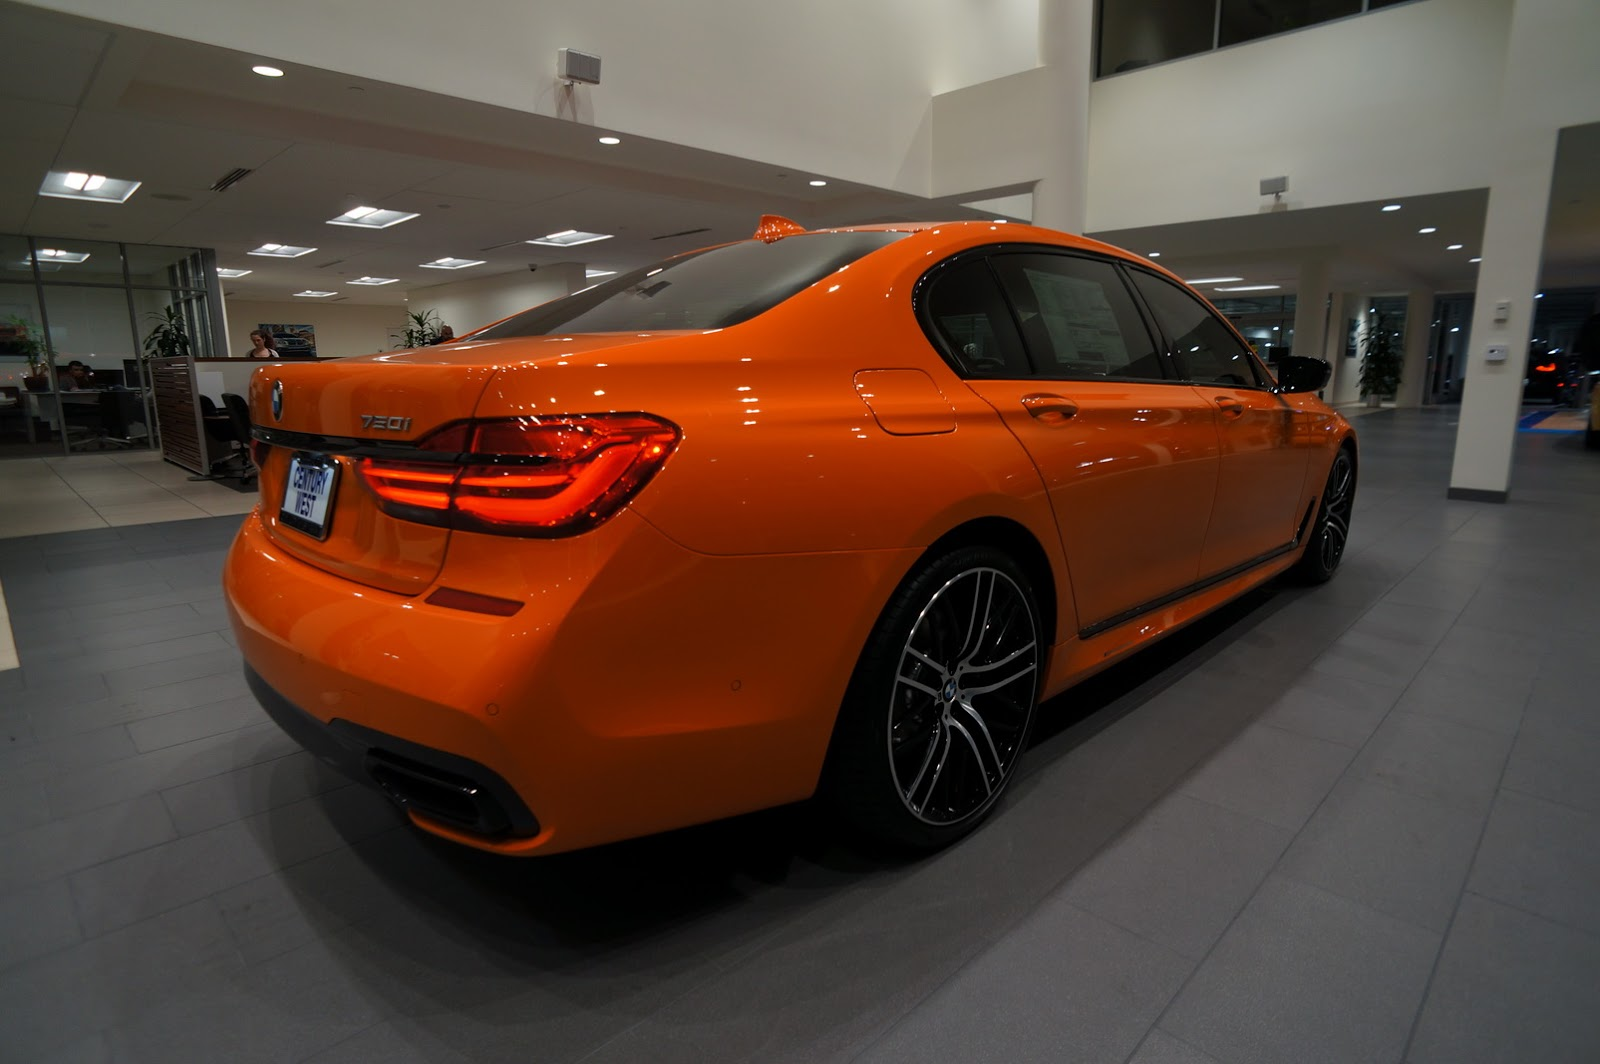 BMW_750i_Fire_Orange_08